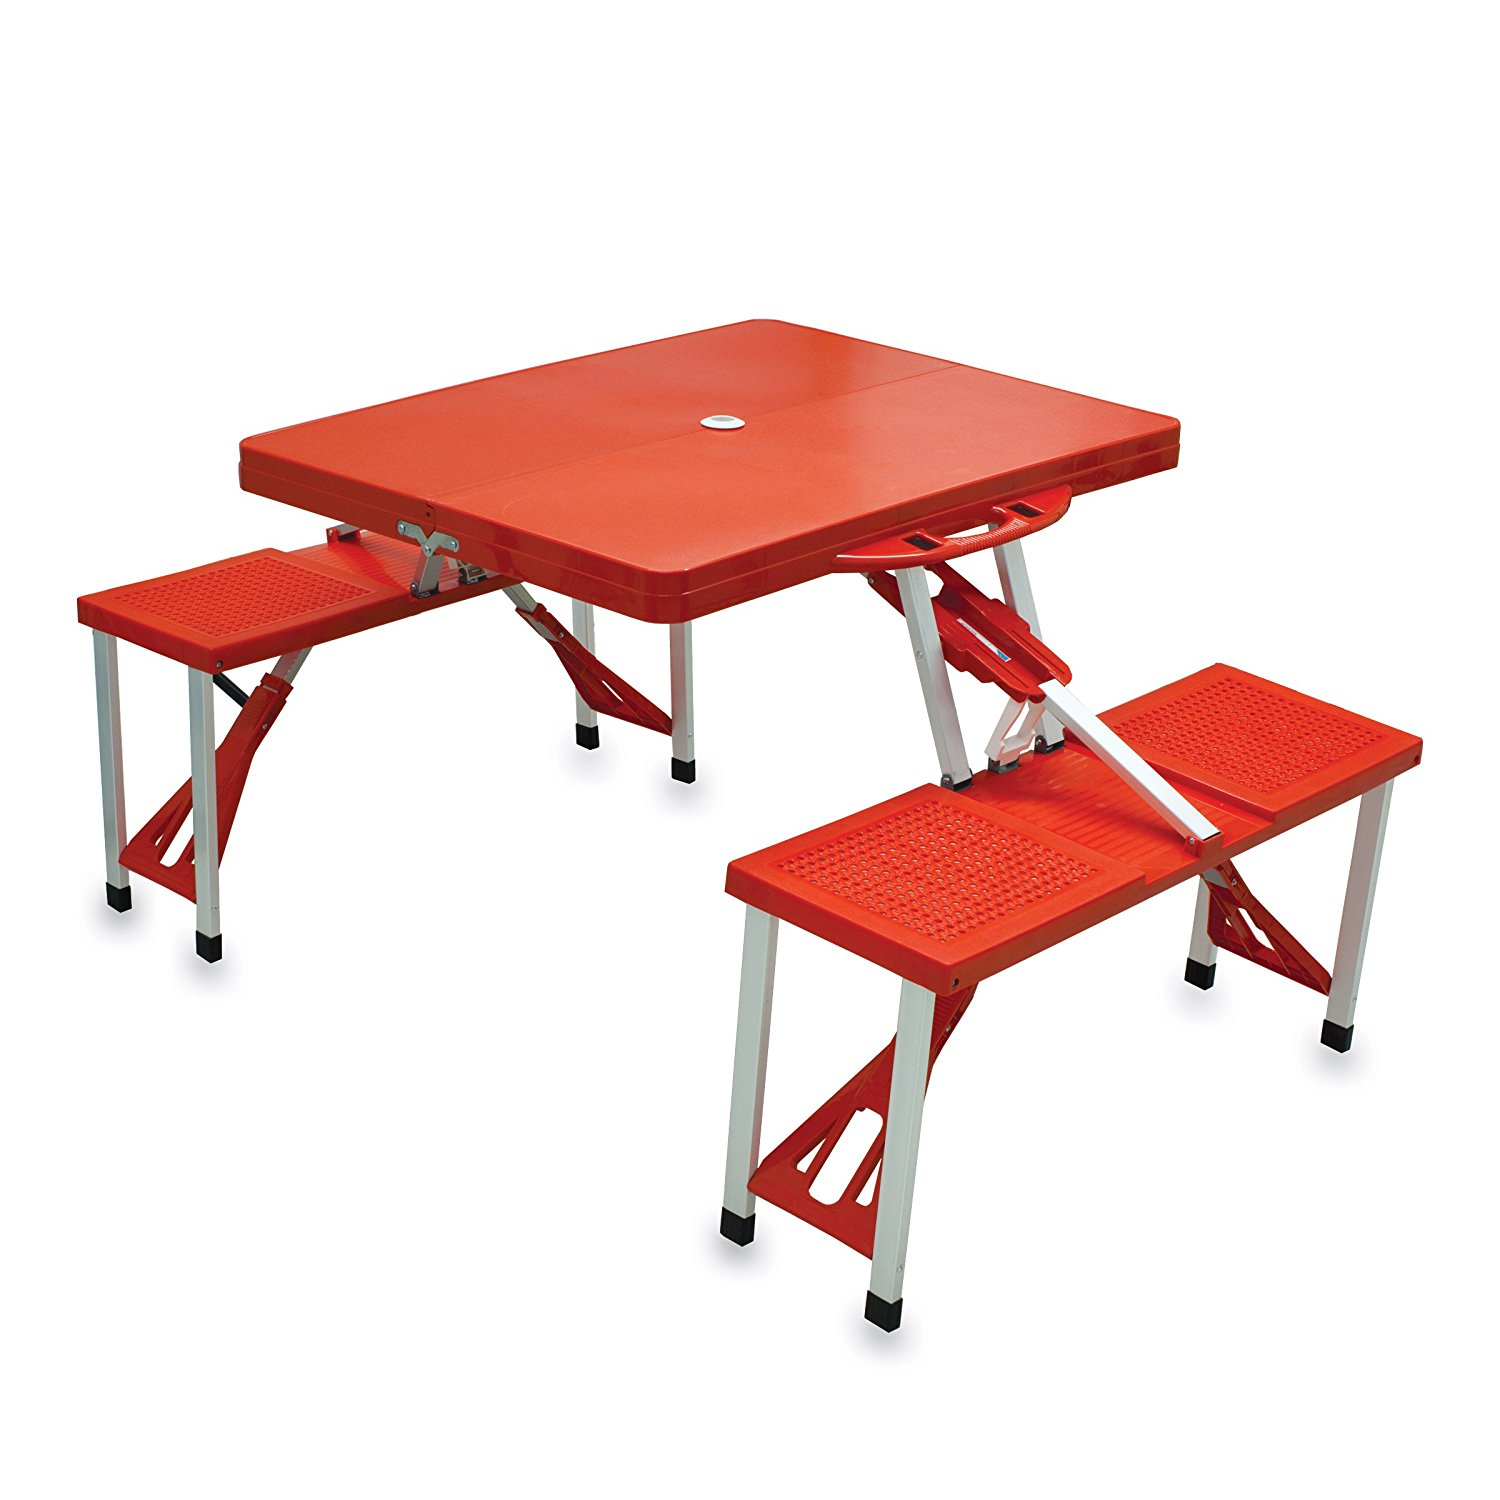 Folding Tables Costco | Costco Utility Table | Costco Folding Tables